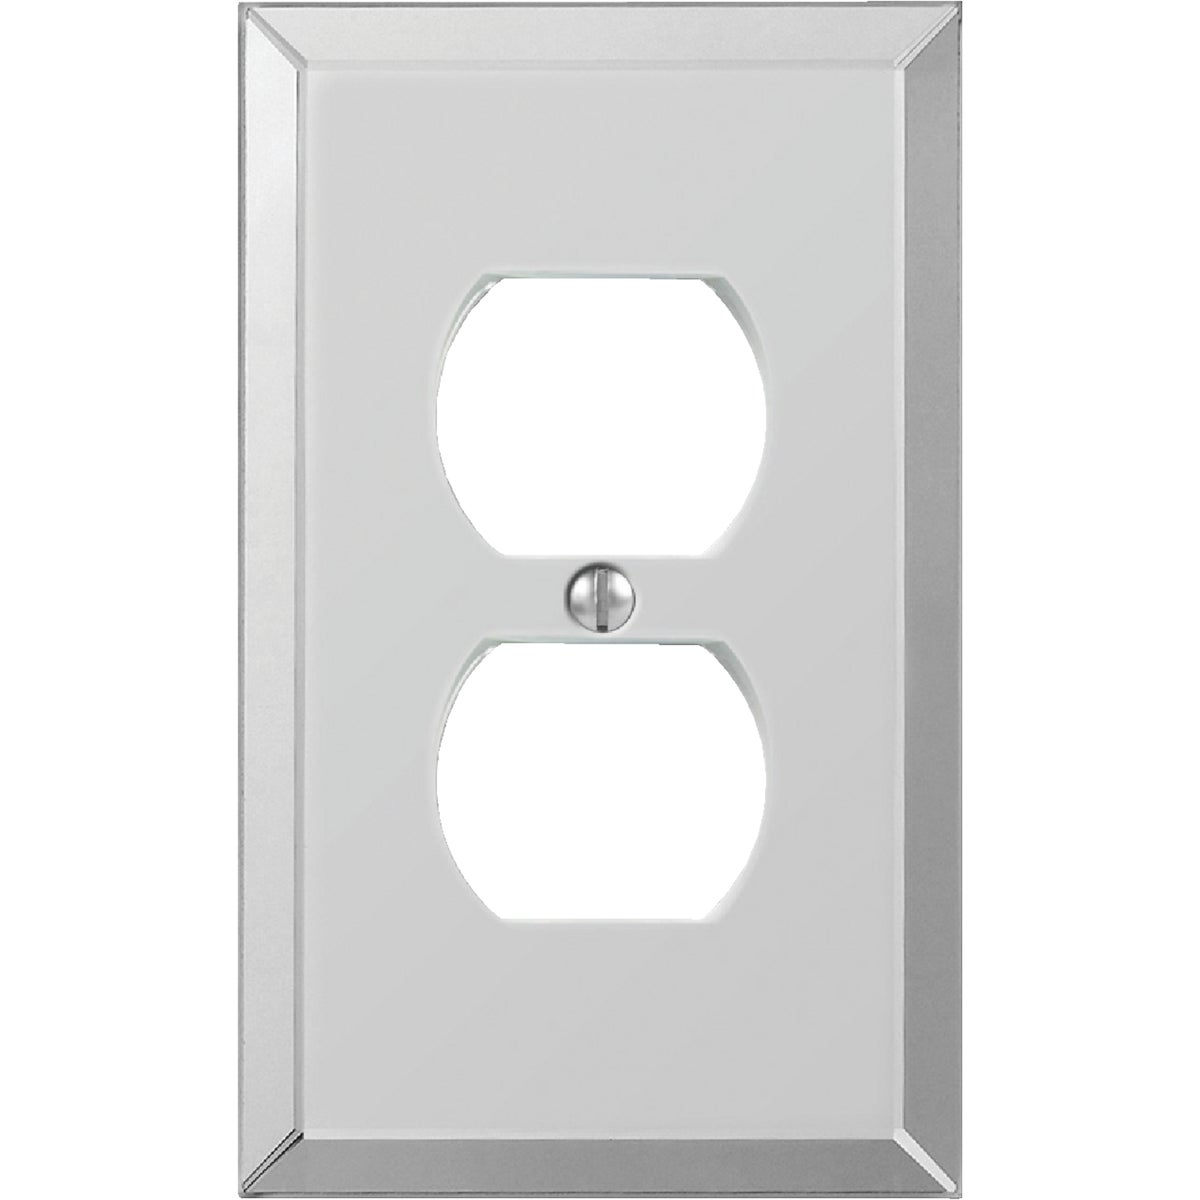 1D O BLV MIRR WALLPLATE - 9MC108 by Jackson Deerfield Mf